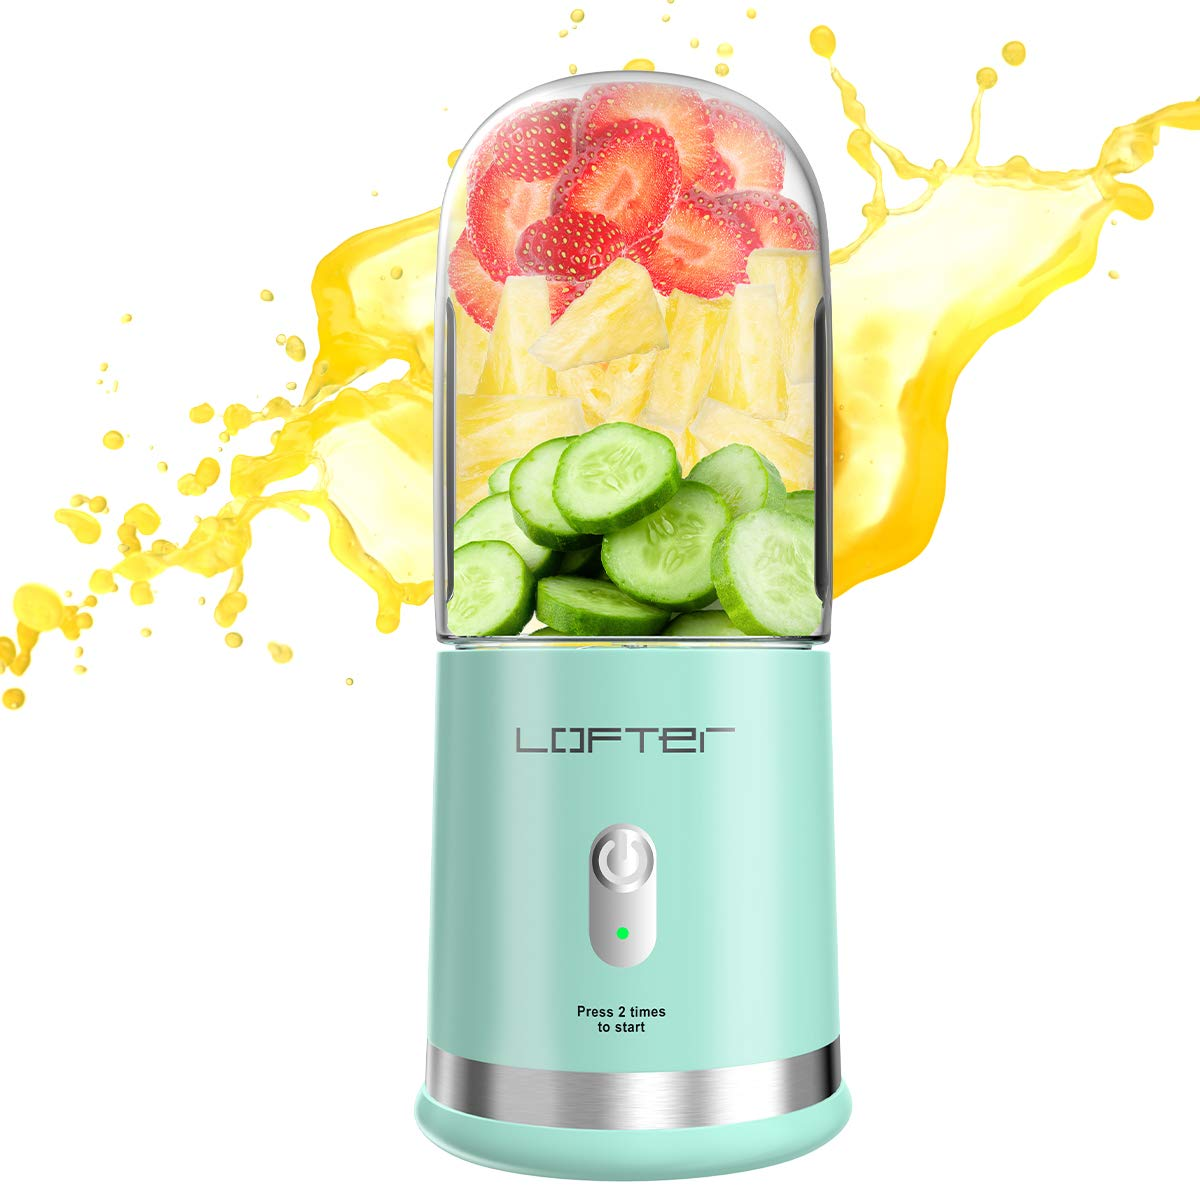 Portable Blender, LOFTer Juicer Cup - USB Blender with Six Blades in 3D, Mini Travel Blender for Fruits, Personal Blender with 4000 mAh Rechargeable Battery, Ice Tray, Green